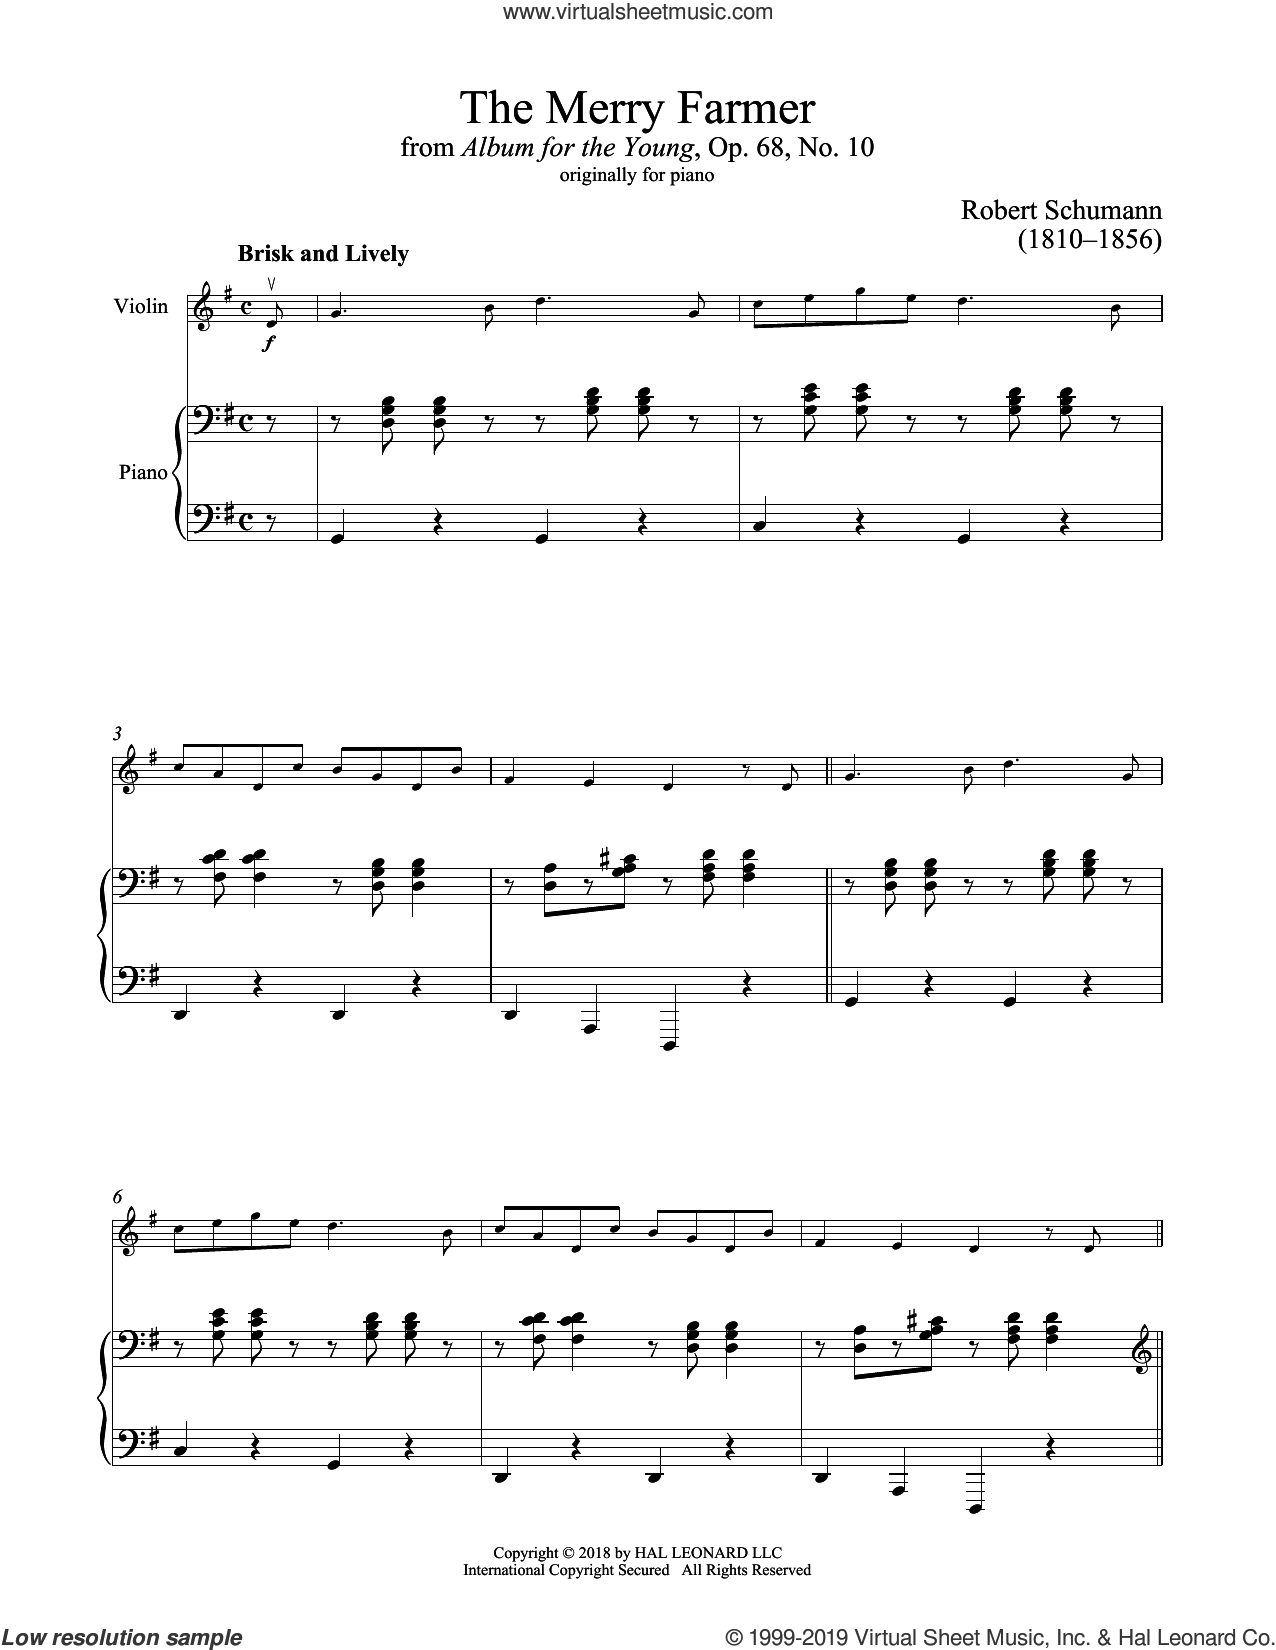 The Happy Farmer sheet music for violin and piano by Robert Schumann, classical score, intermediate skill level